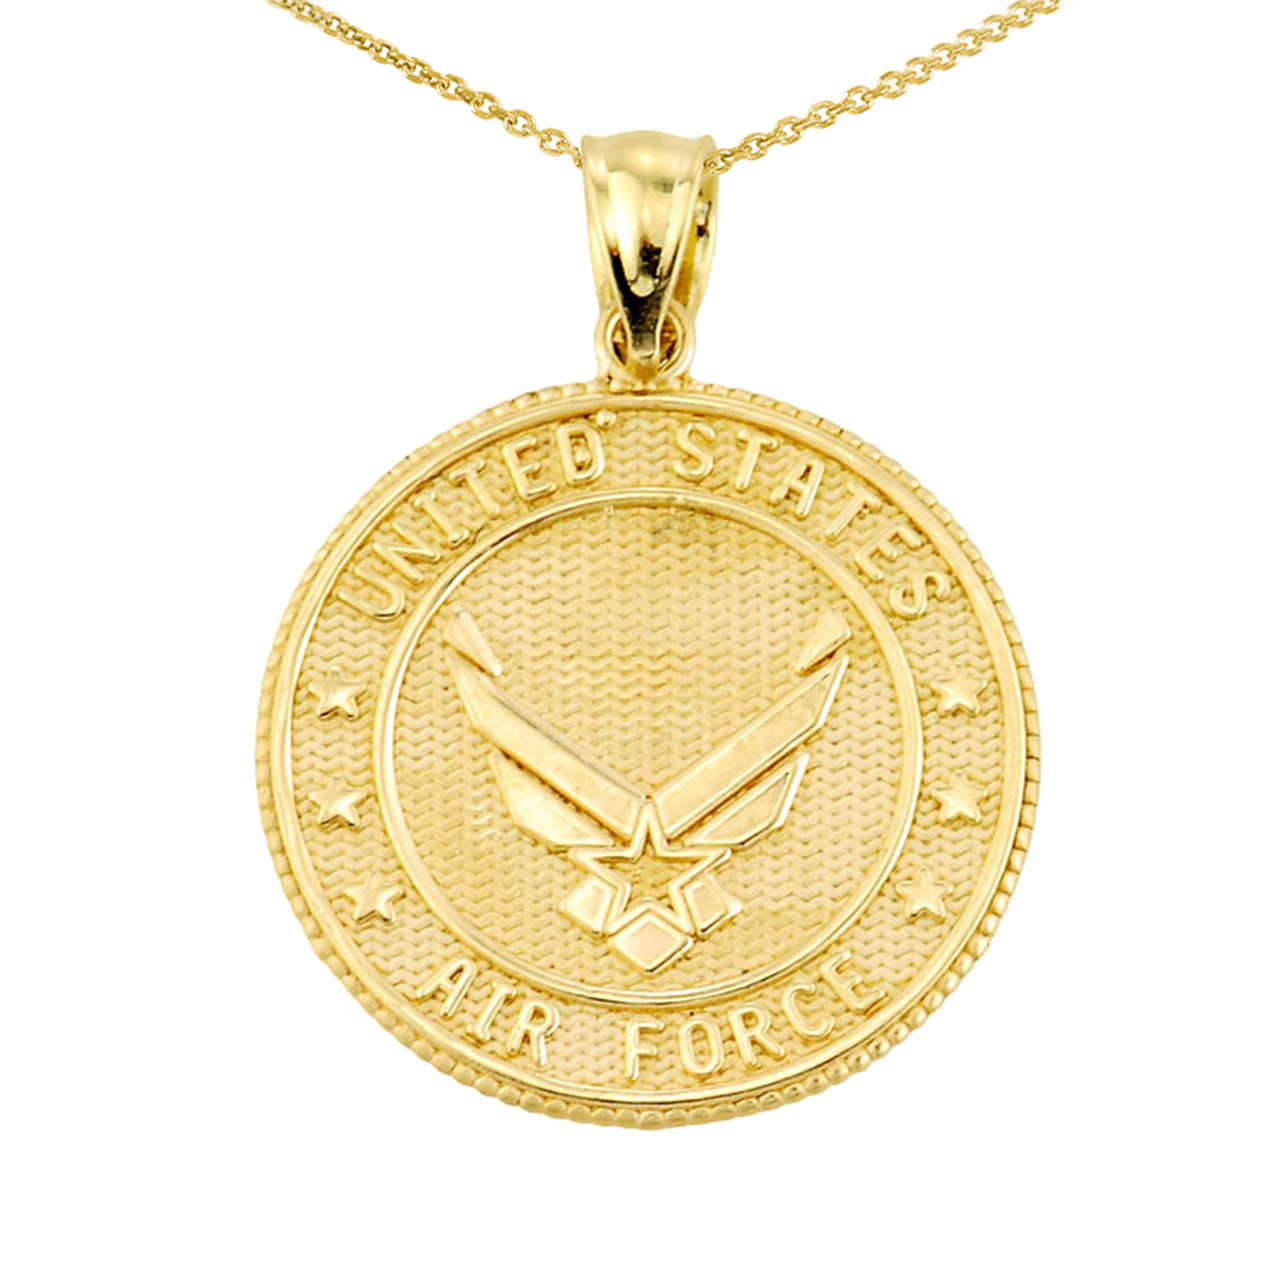 s cts excluded gold oz pendant u diamond eagle coin